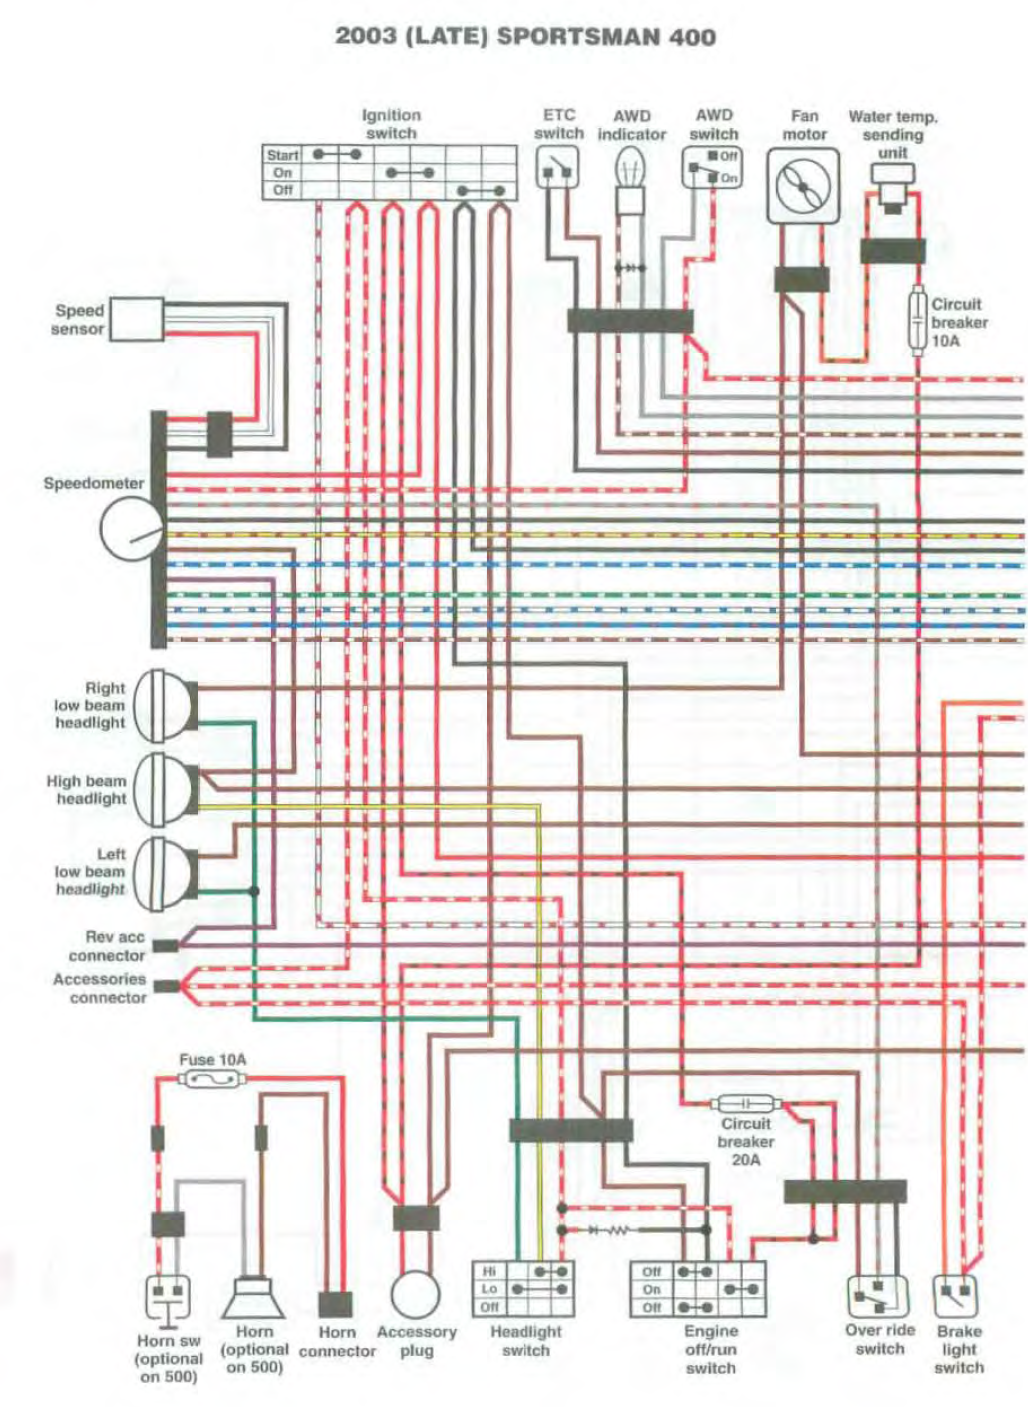 [DIAGRAM_5FD]  Sportsman 500 wiring diagram | Polaris ATV Forum | Wiring Diagram Polaris 2005 500 Ho |  | Polaris ATV Forum